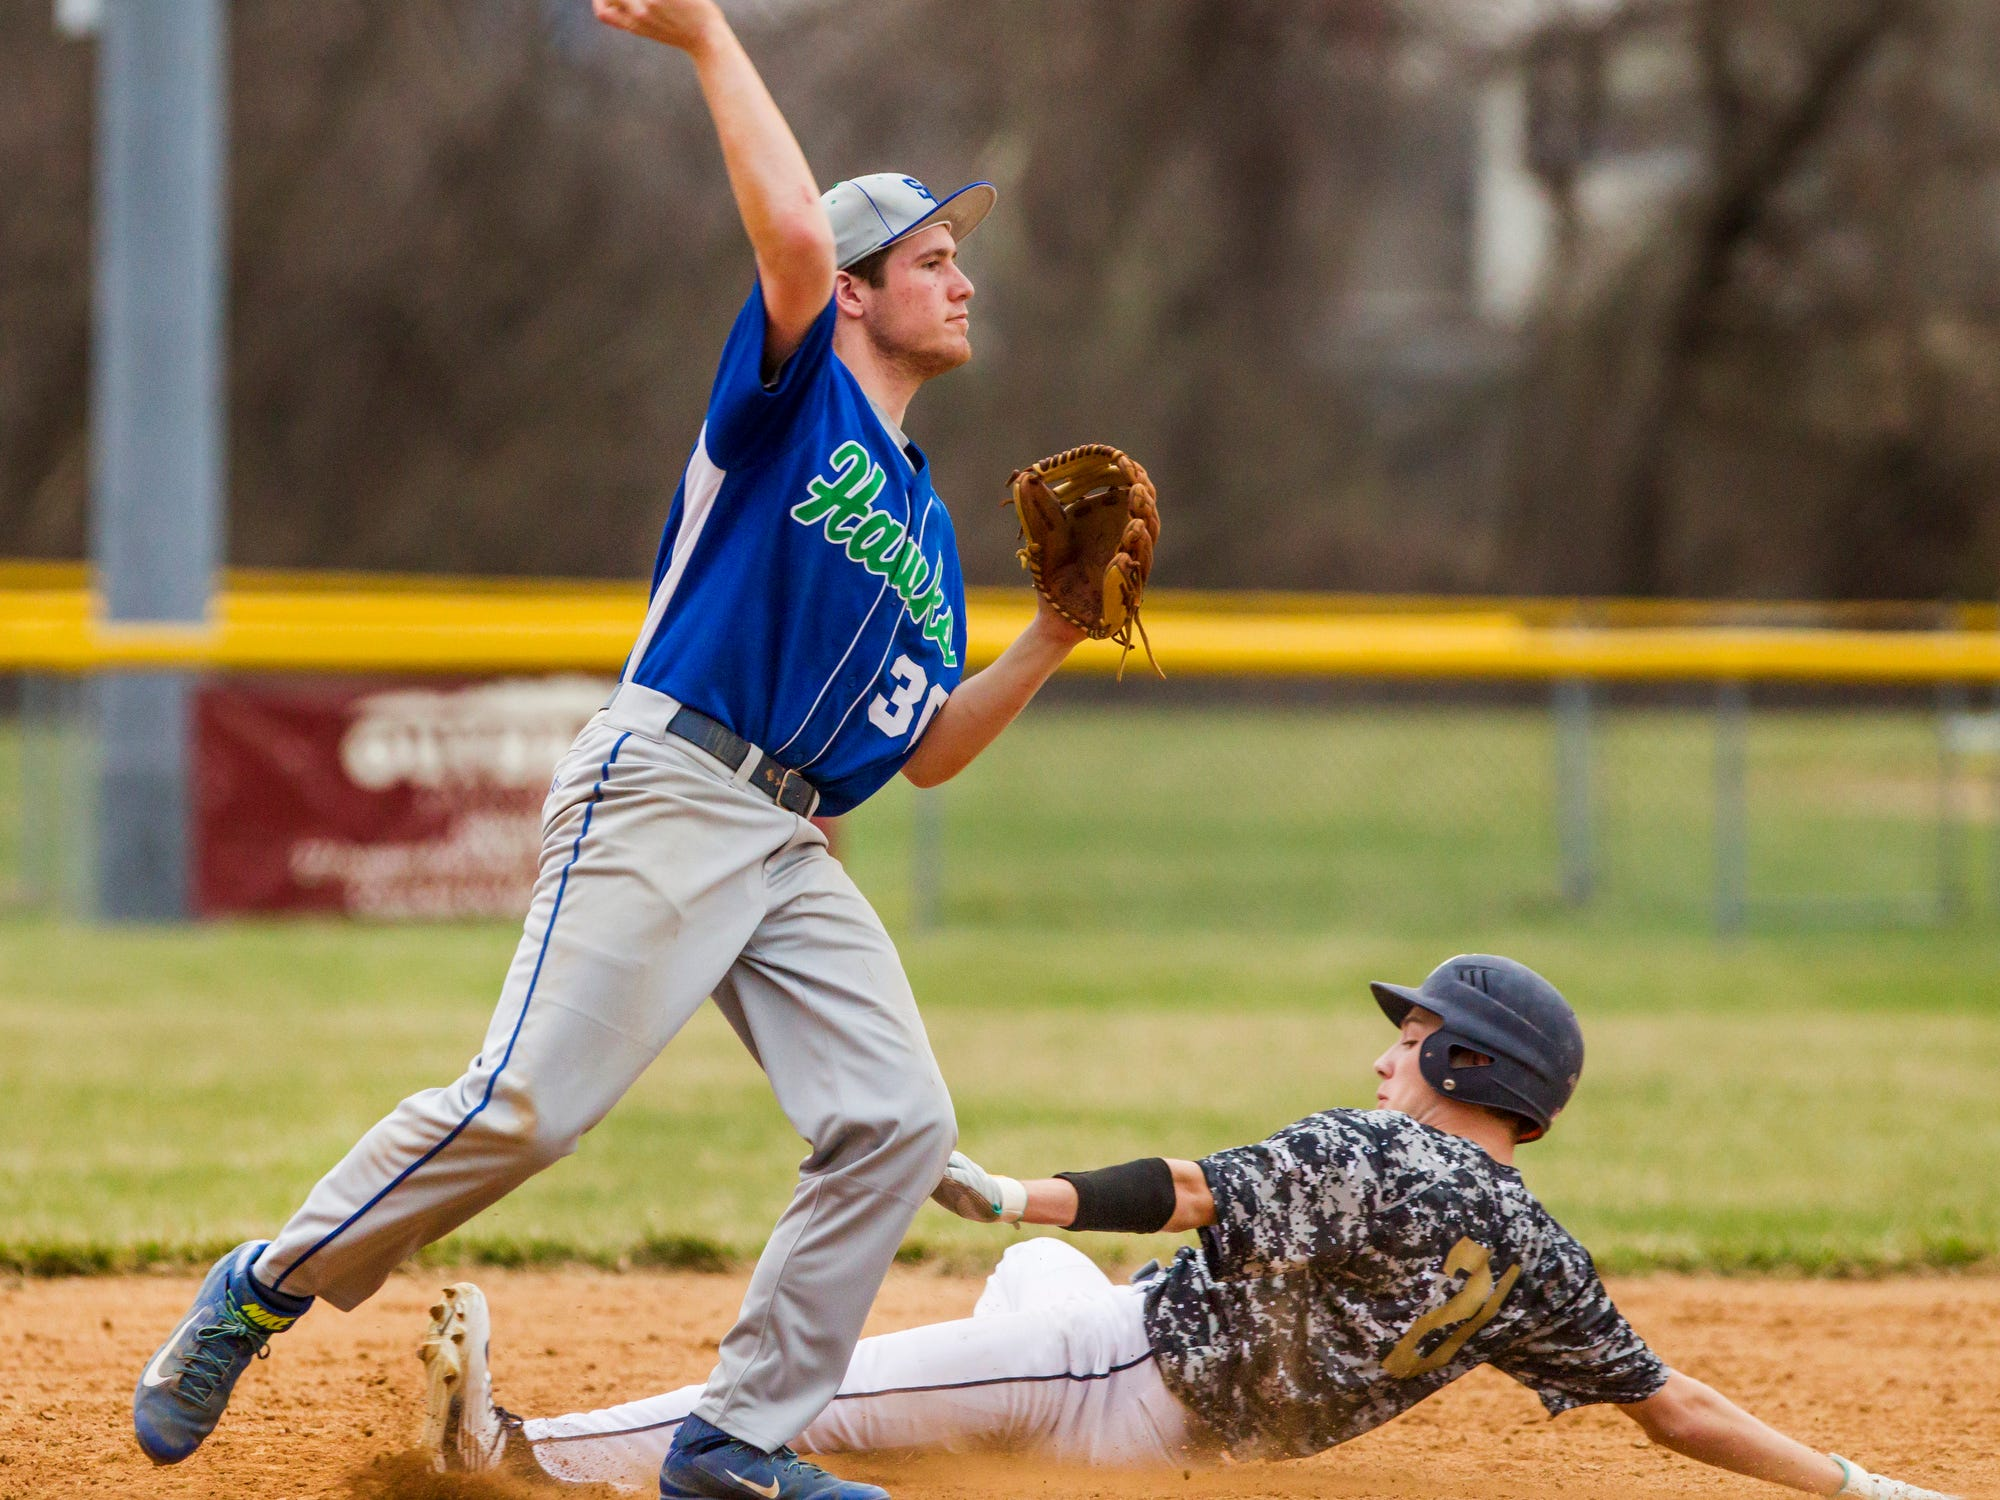 St. Georges second baseman Riley Hall turns to throw to first after putting out Delaware Military Academy's Andrew Turulski during a game at Newark National field on Tuesday afternoon.